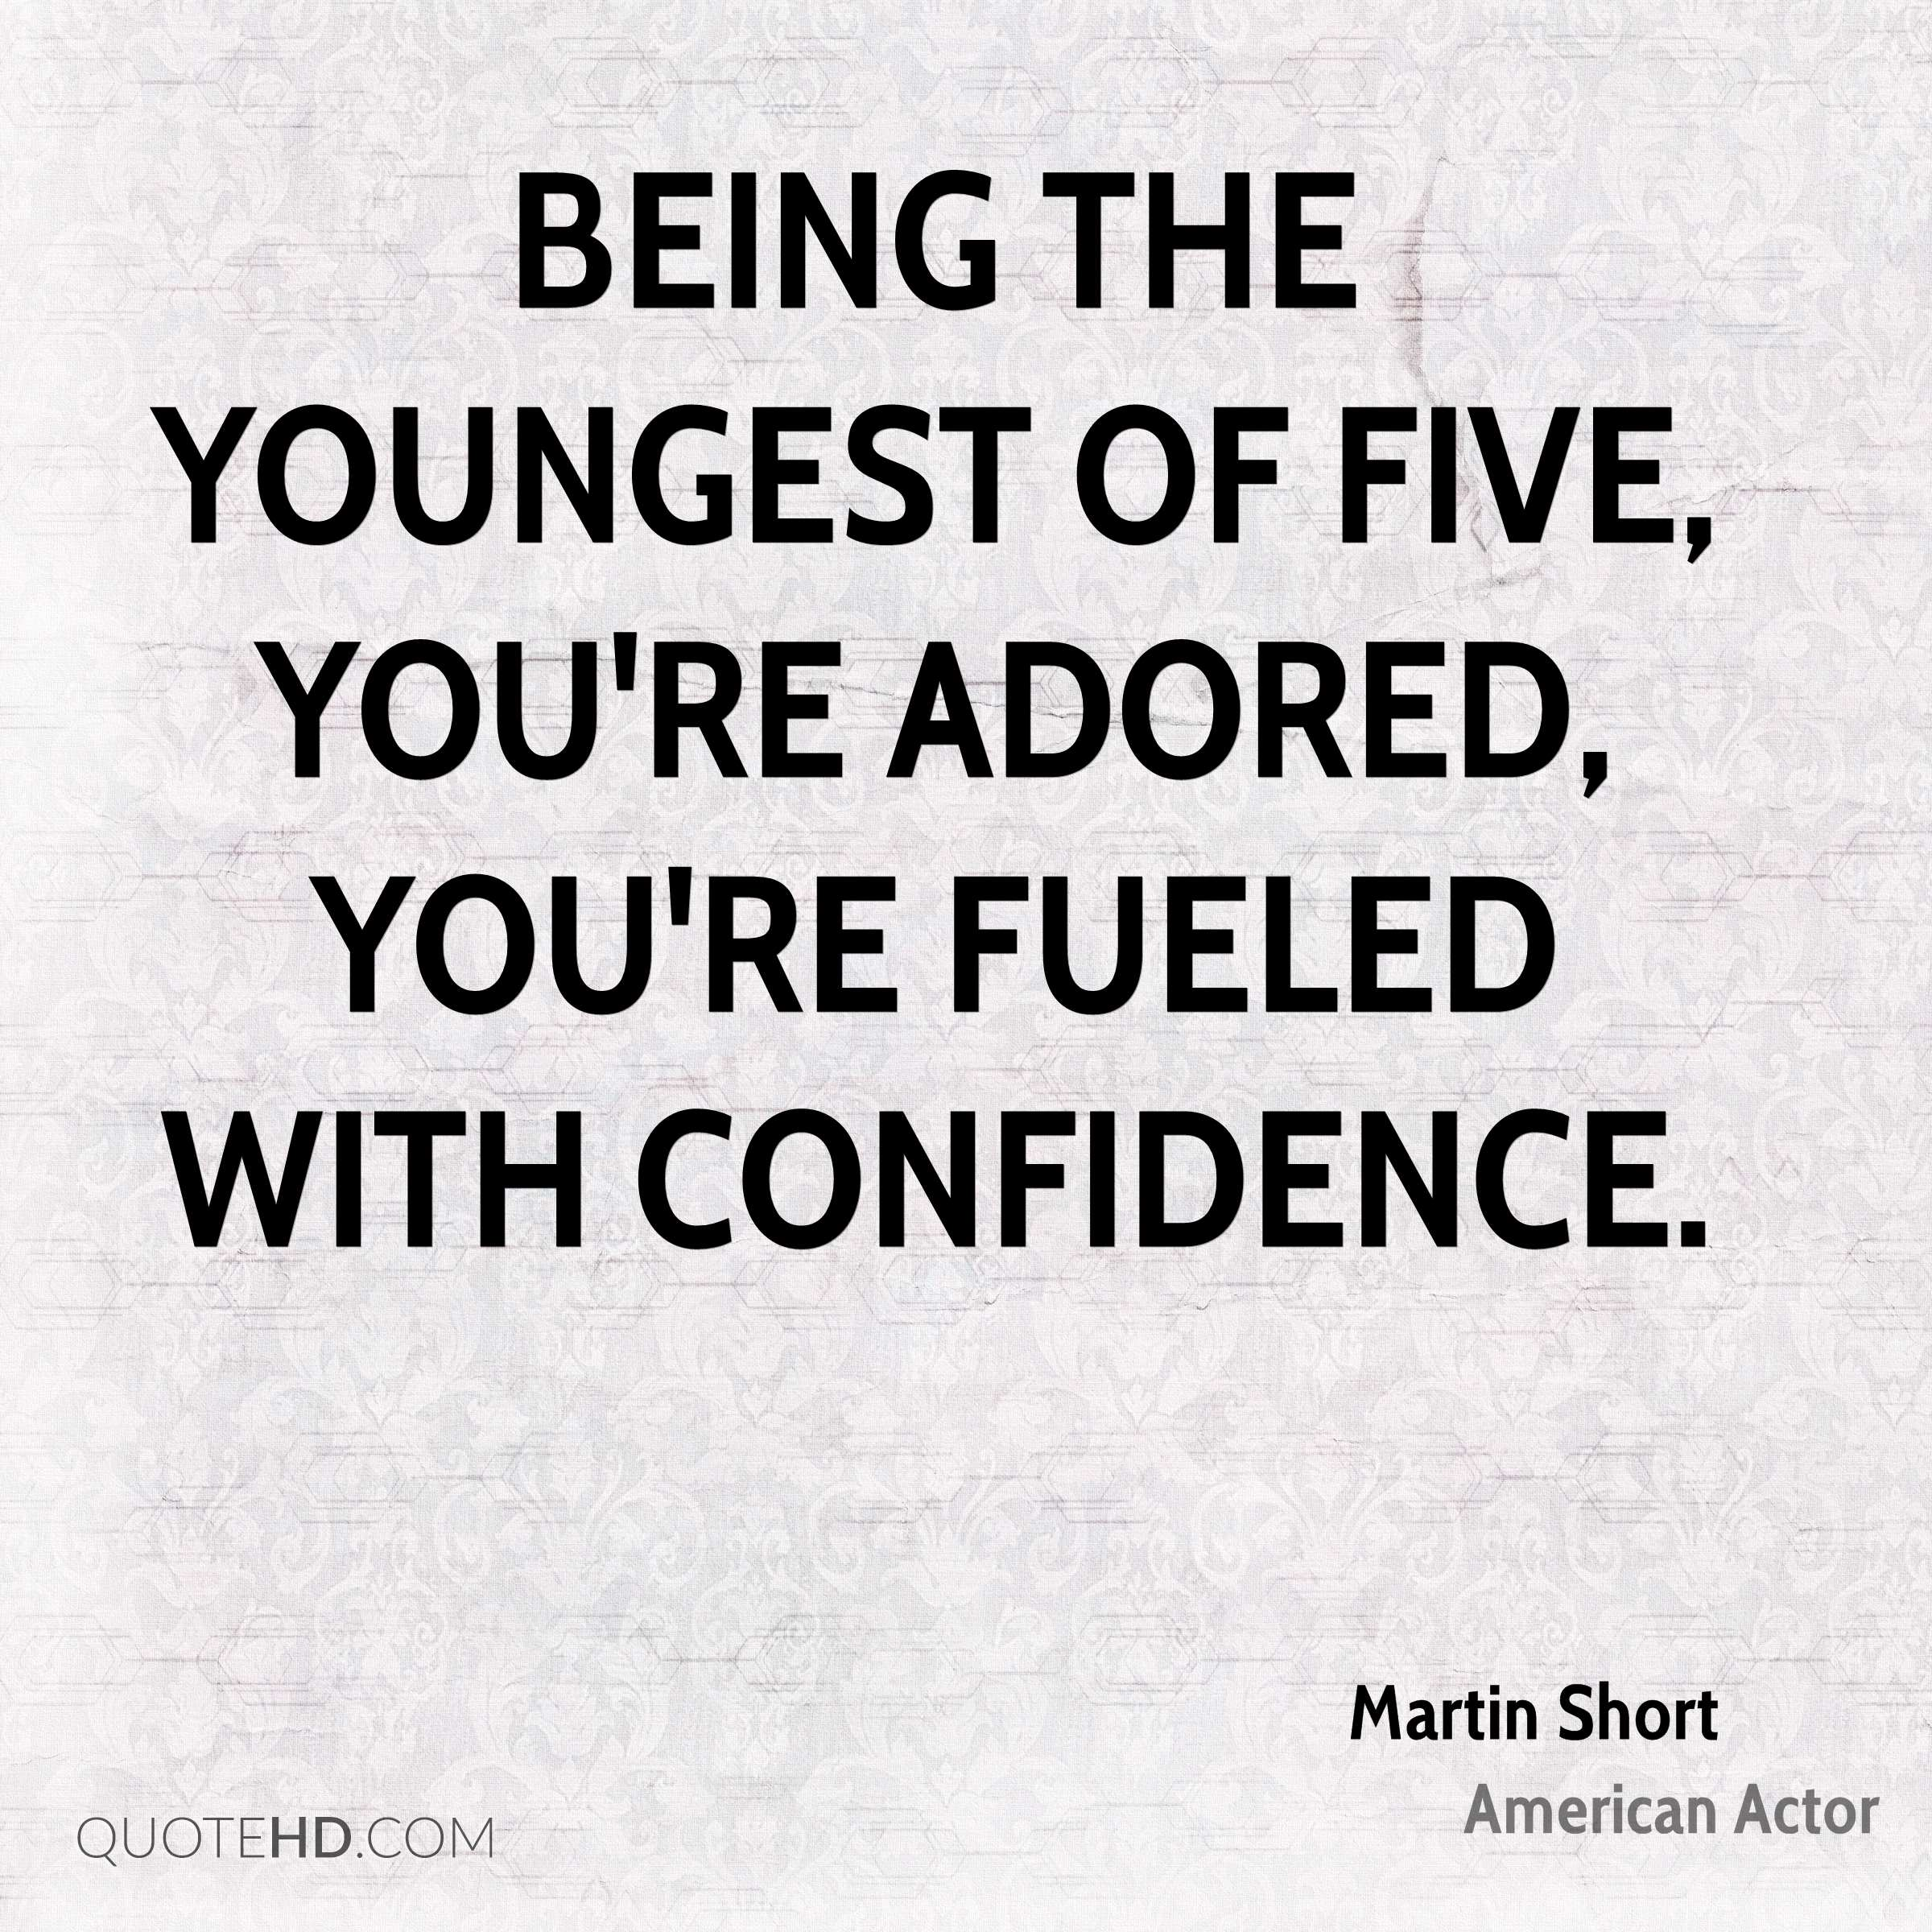 Being the youngest of five, you're adored, you're fueled with confidence.